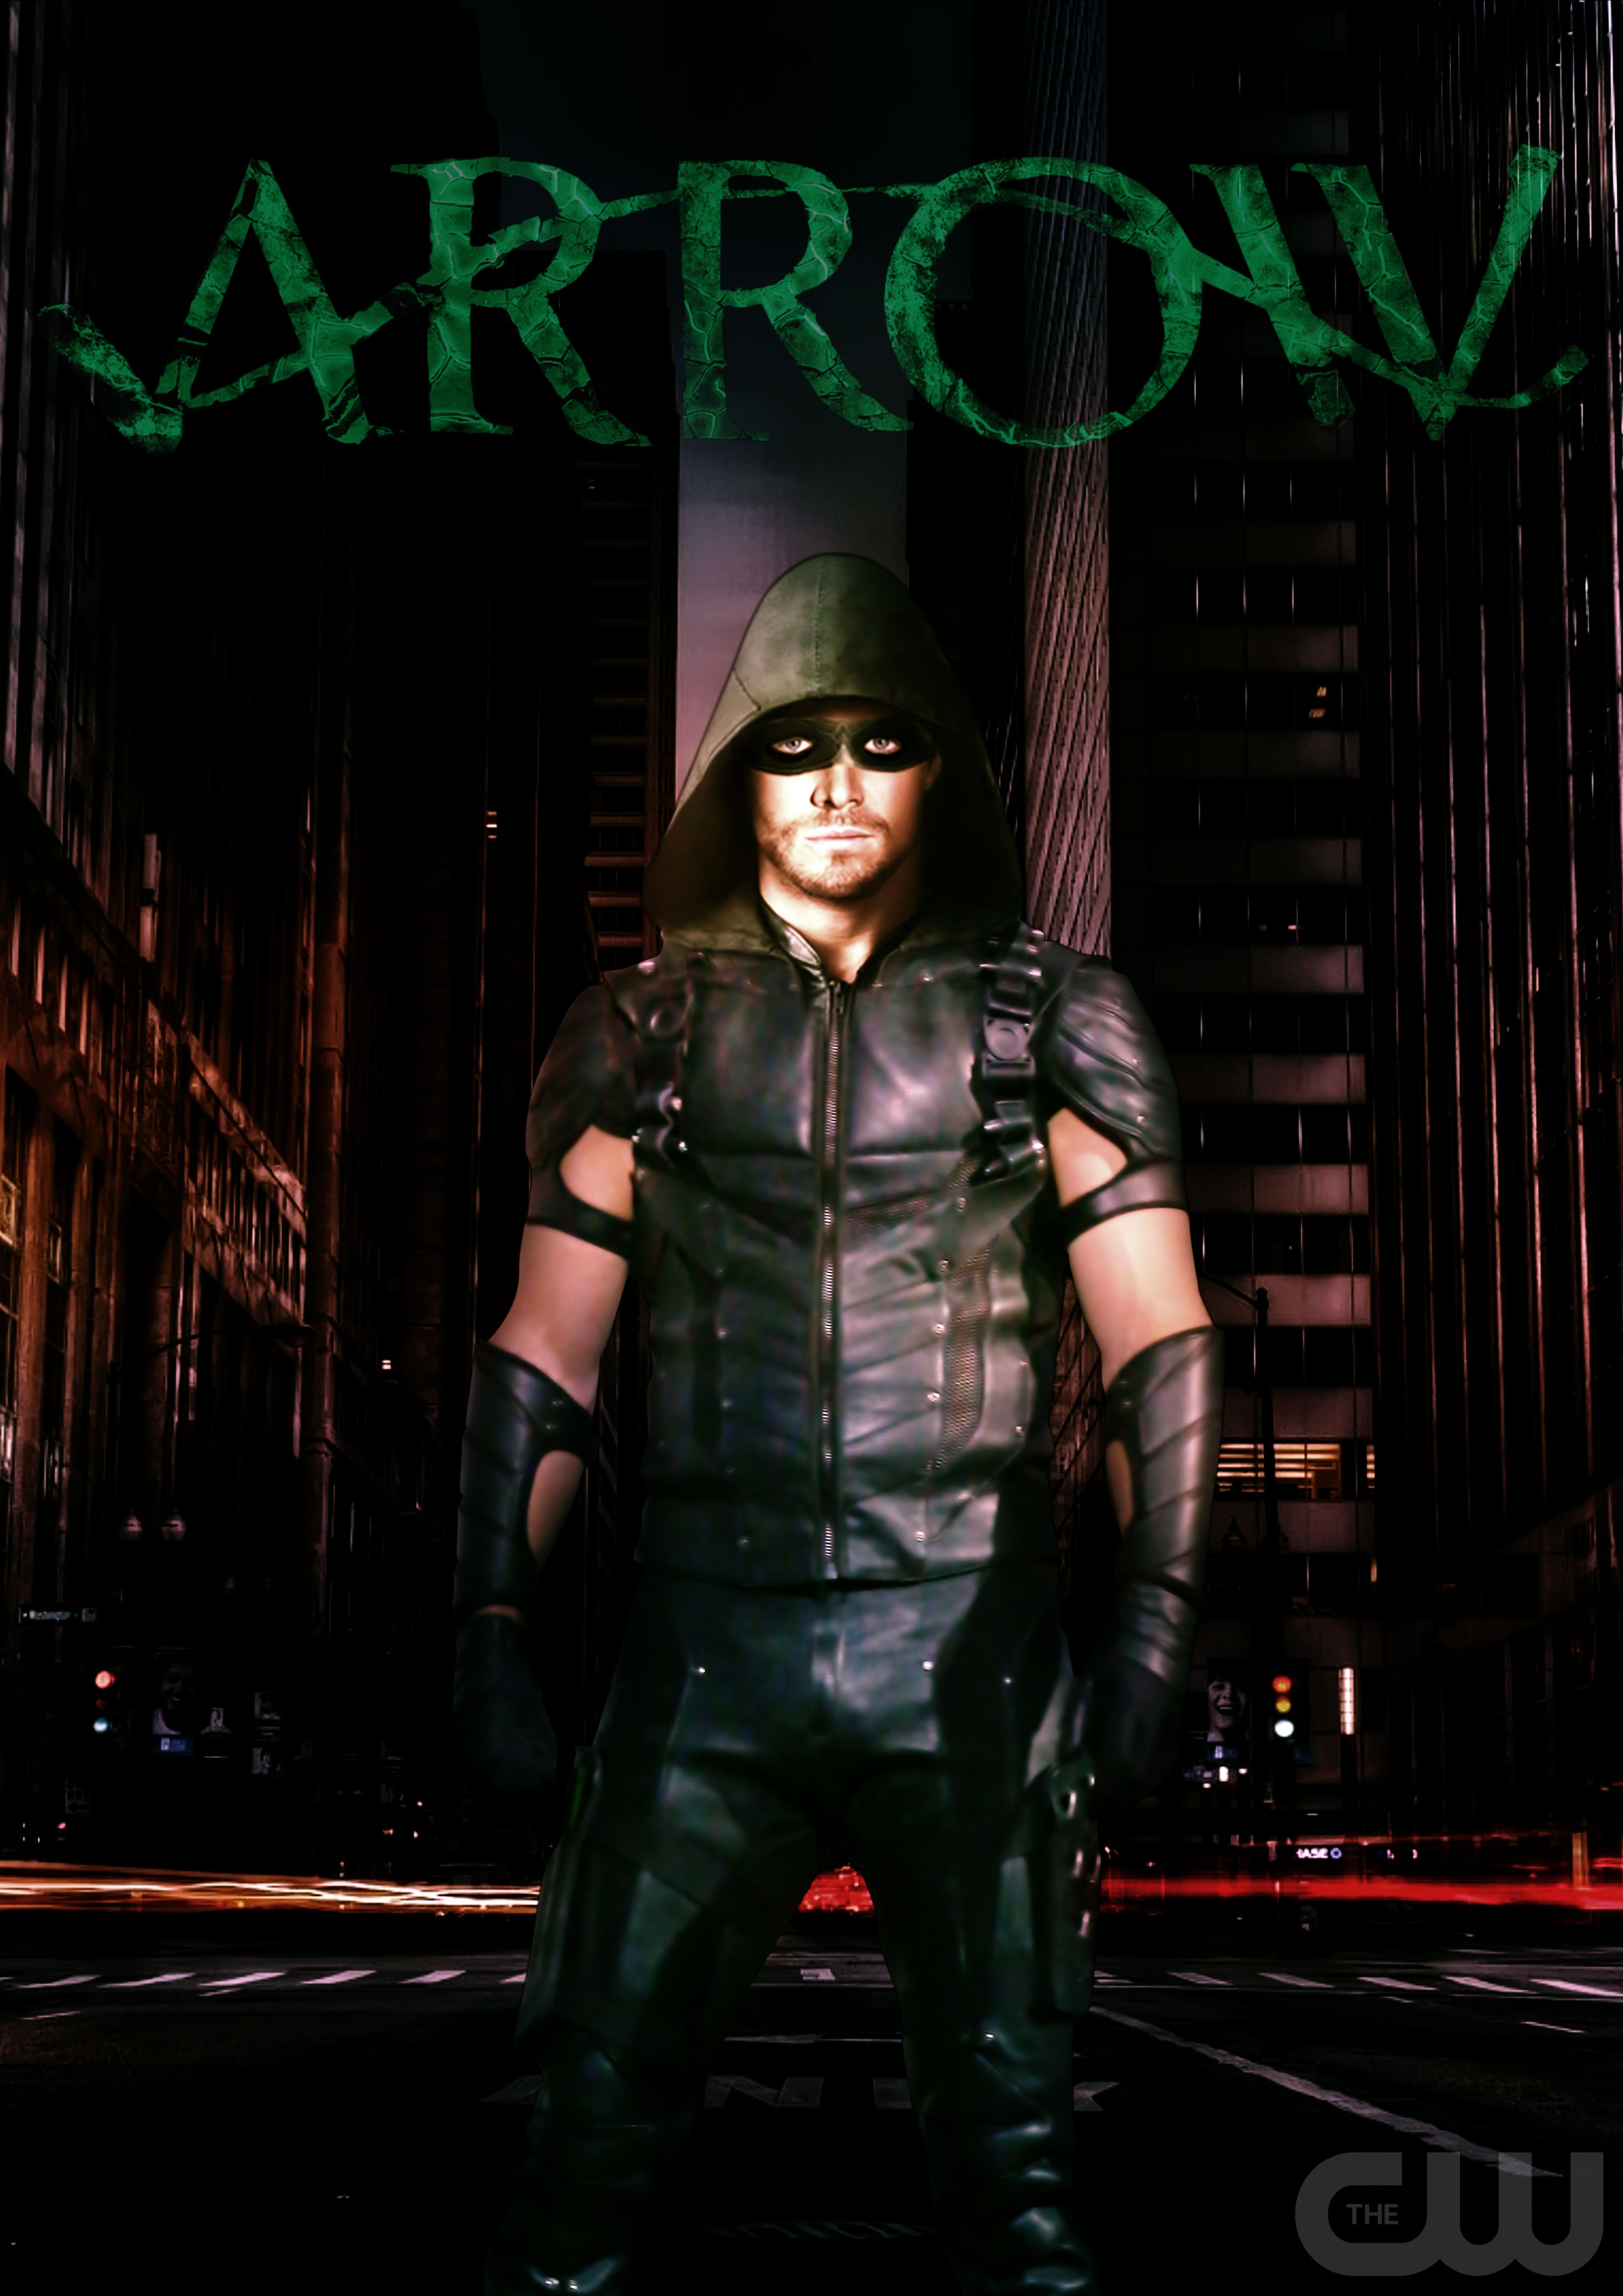 Arrow Season 4 New Suit Poster By MacSchaer